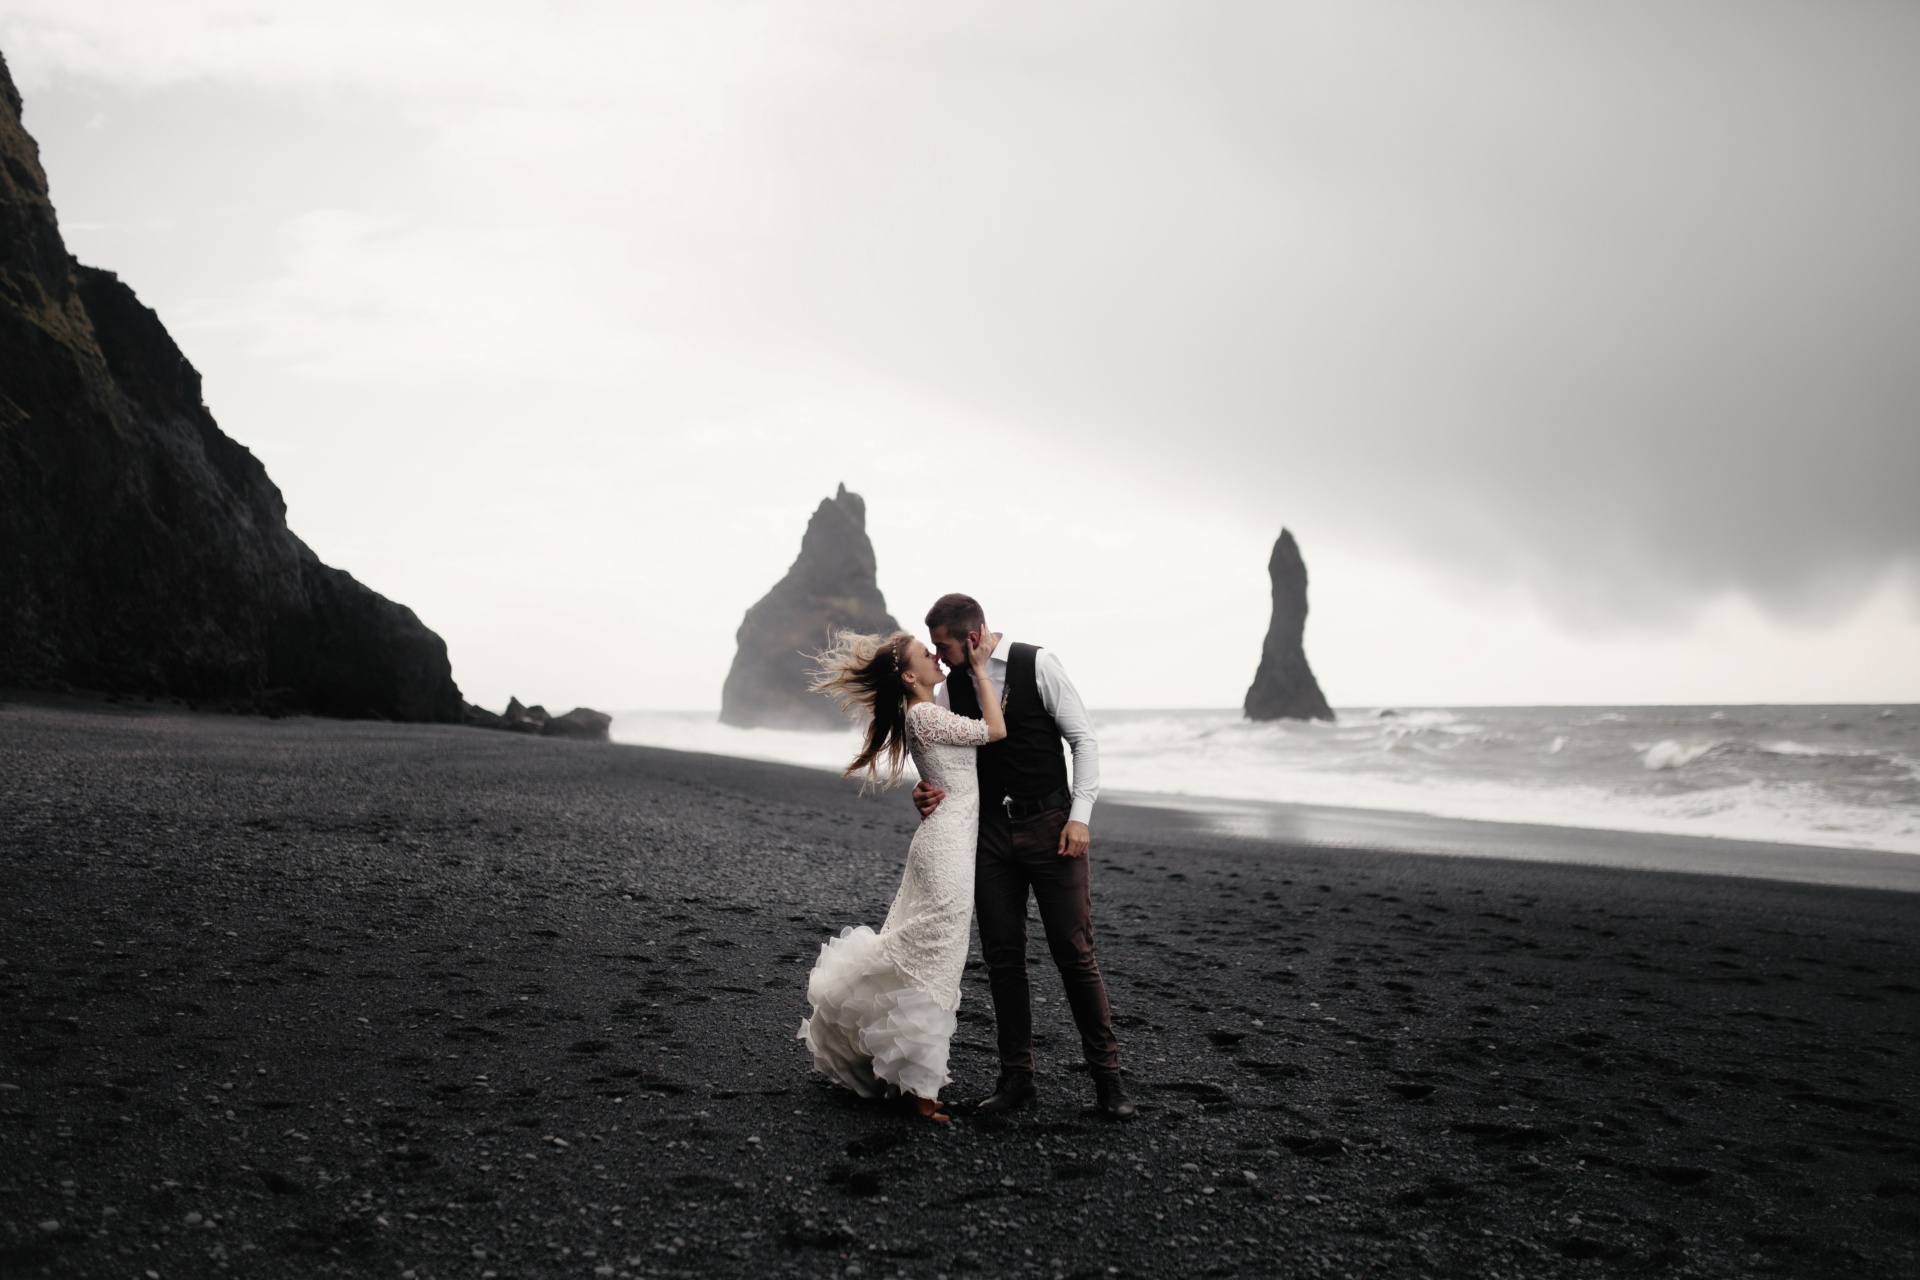 50 Married Couples Reveal What They Regret The Most About Their Wedding Day